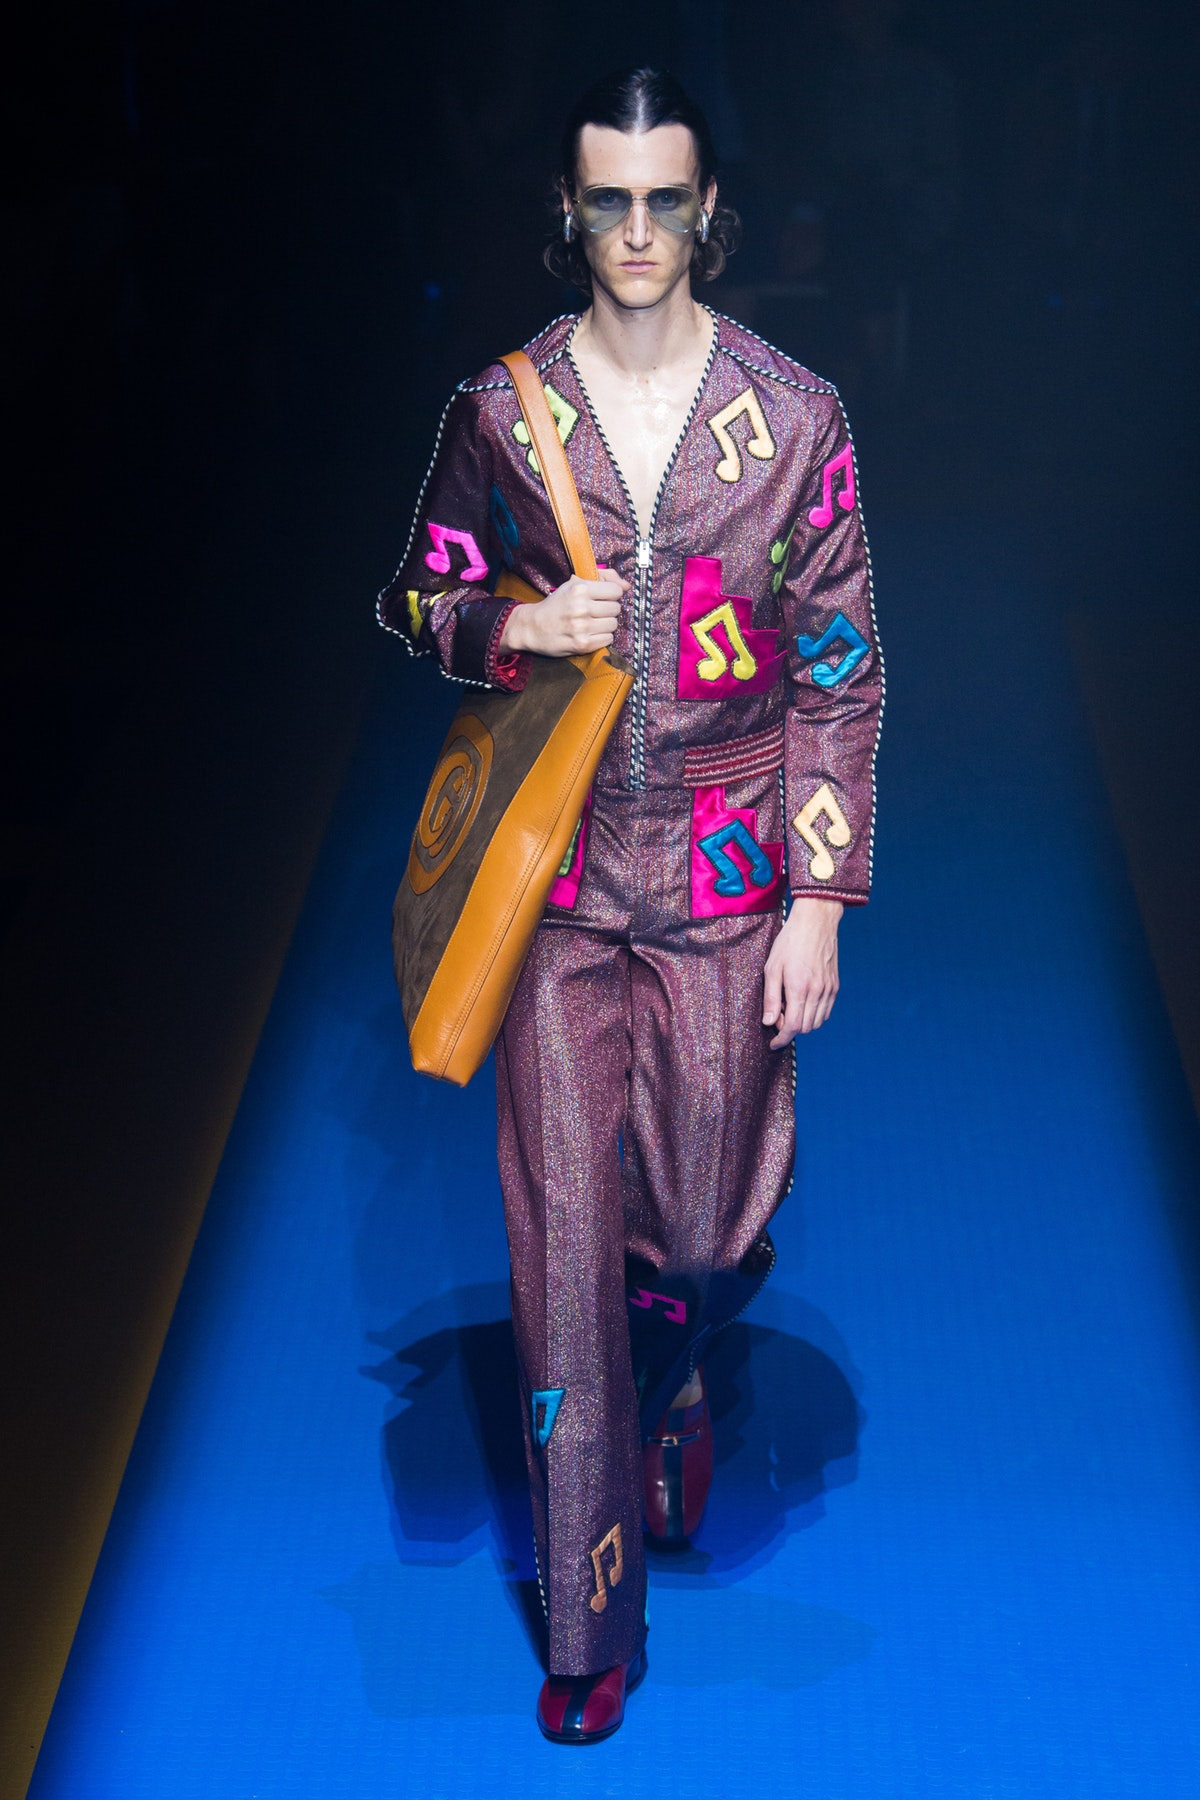 gucci_look_7_ready_to_wear_spring_2018.jpeg